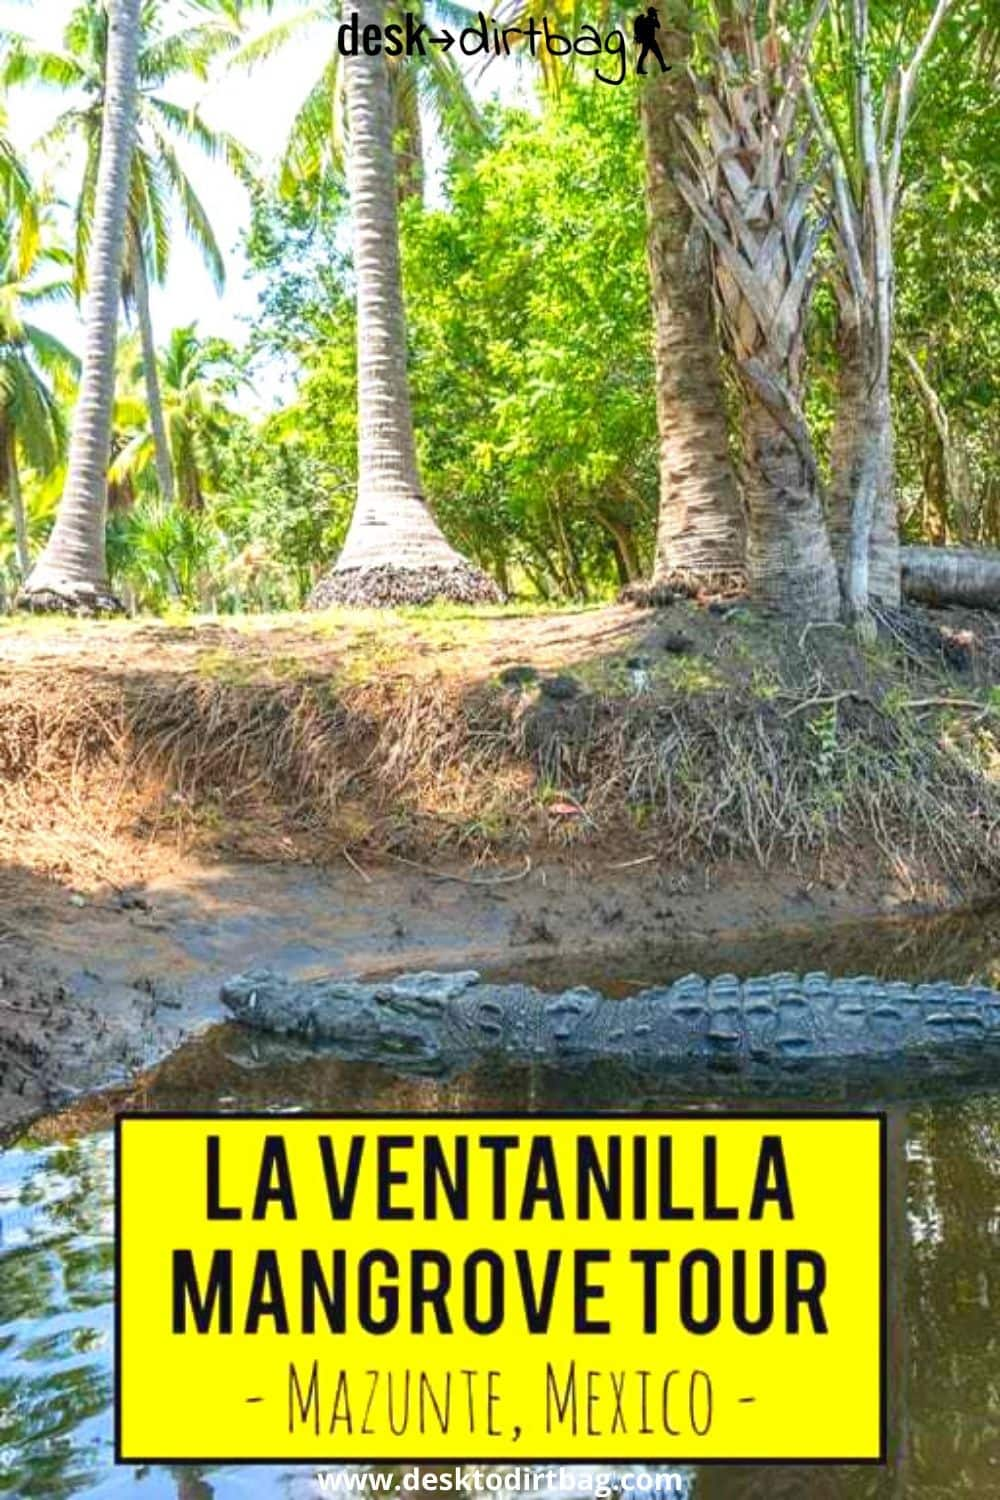 Ecotourism Among the Mangroves and Wildlife in La Ventanilla, Mexico travel, mexico, central-america